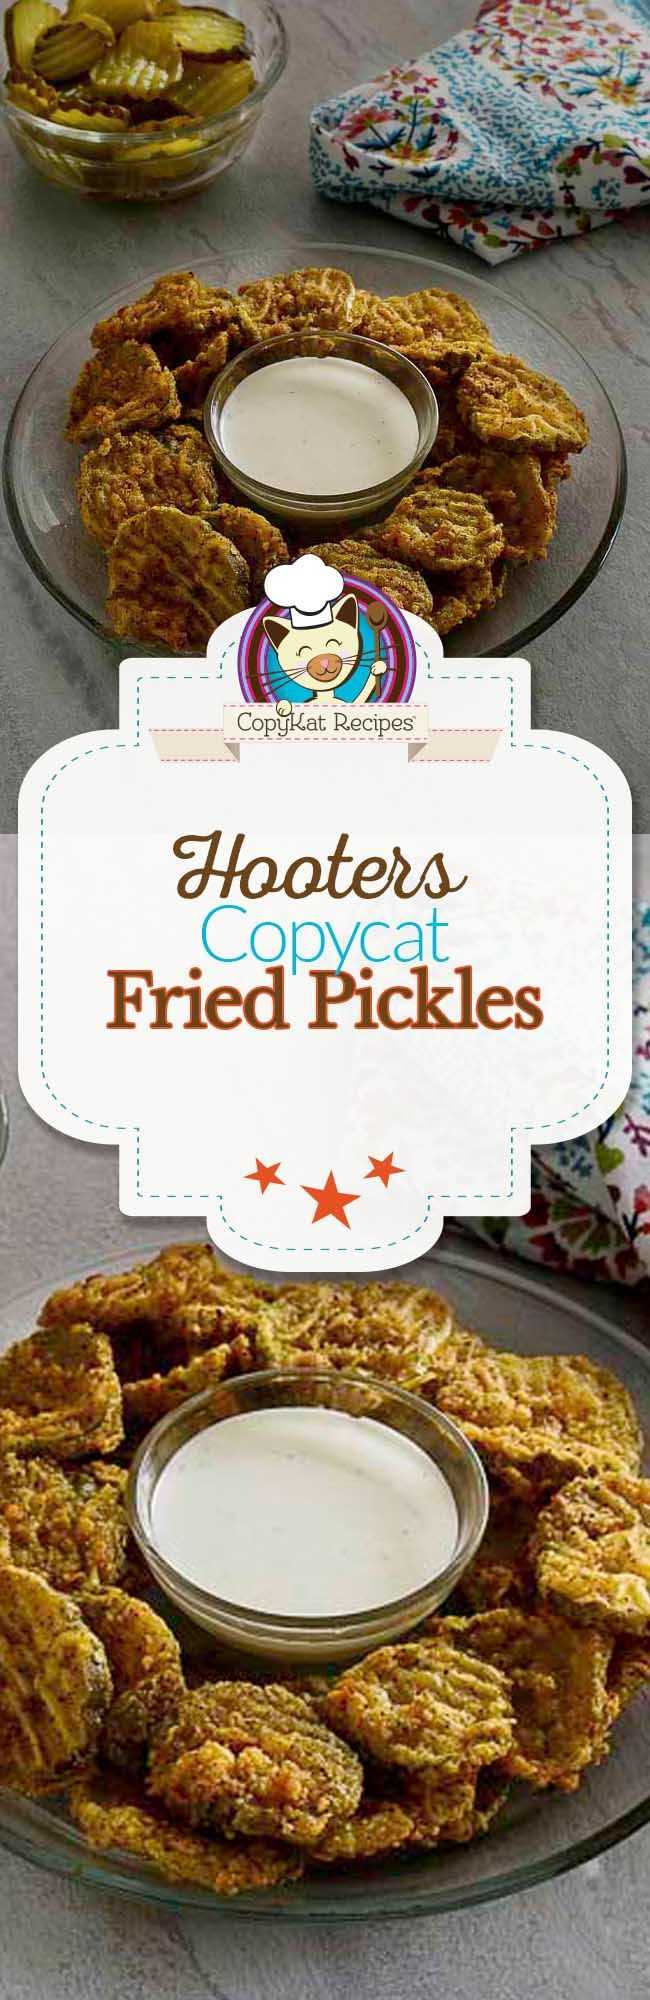 Make Hooters Fried Pickles at home with this easy copycat recipe.   People say these taste just like the real ones.